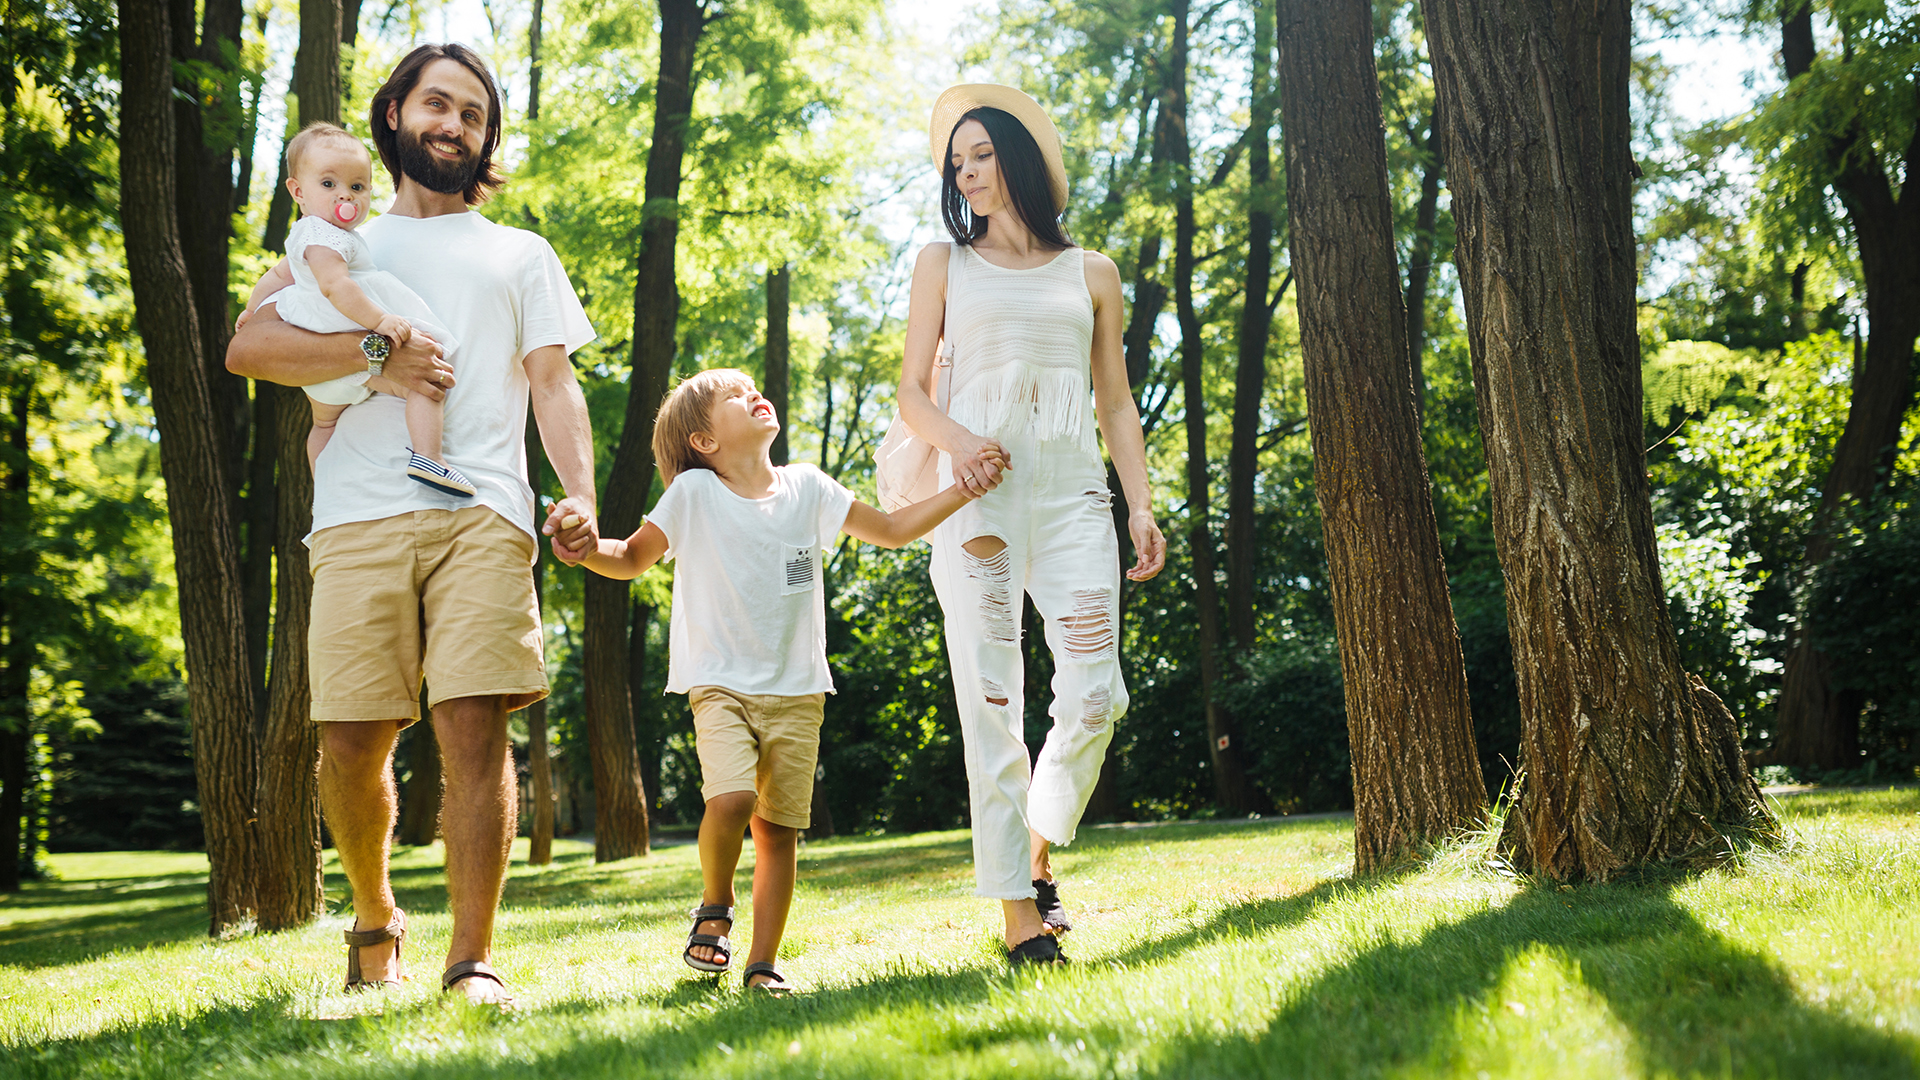 Sunny summer day. Happy young family dressed in the white casual clothes walks in the park.